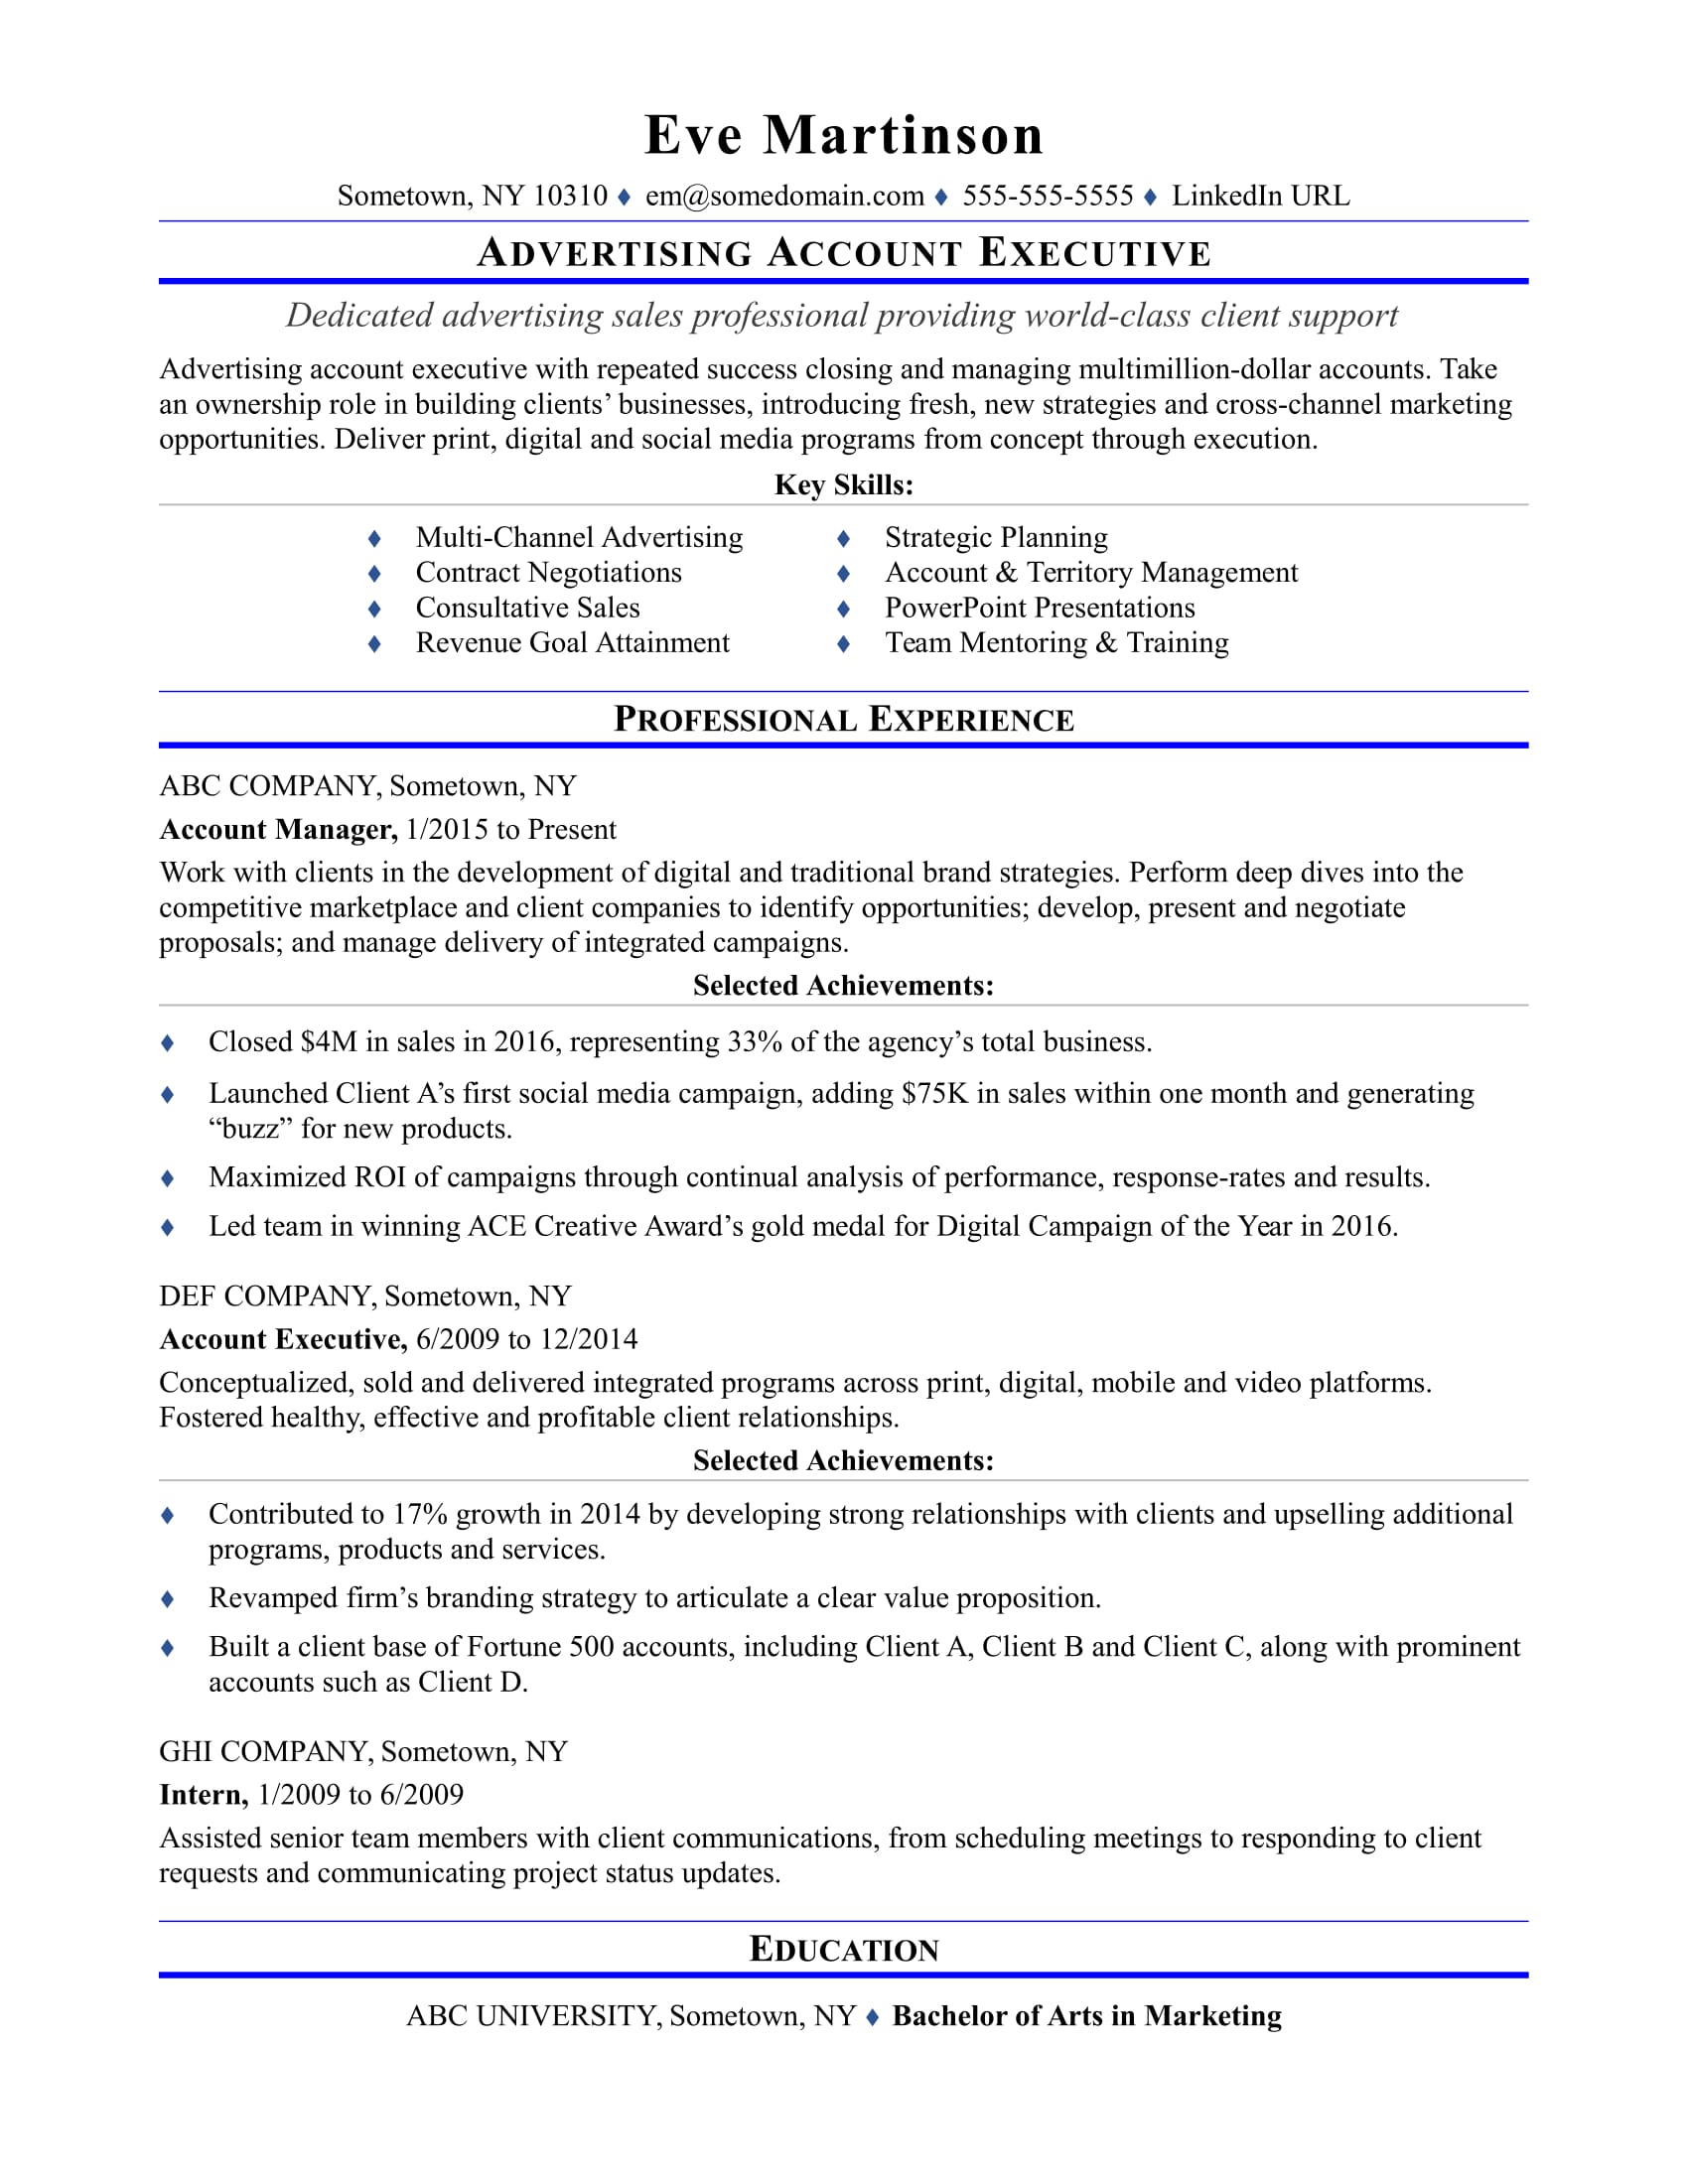 sample resume for an advertising account executive monster about yourself examples Resume Resume About Yourself Examples